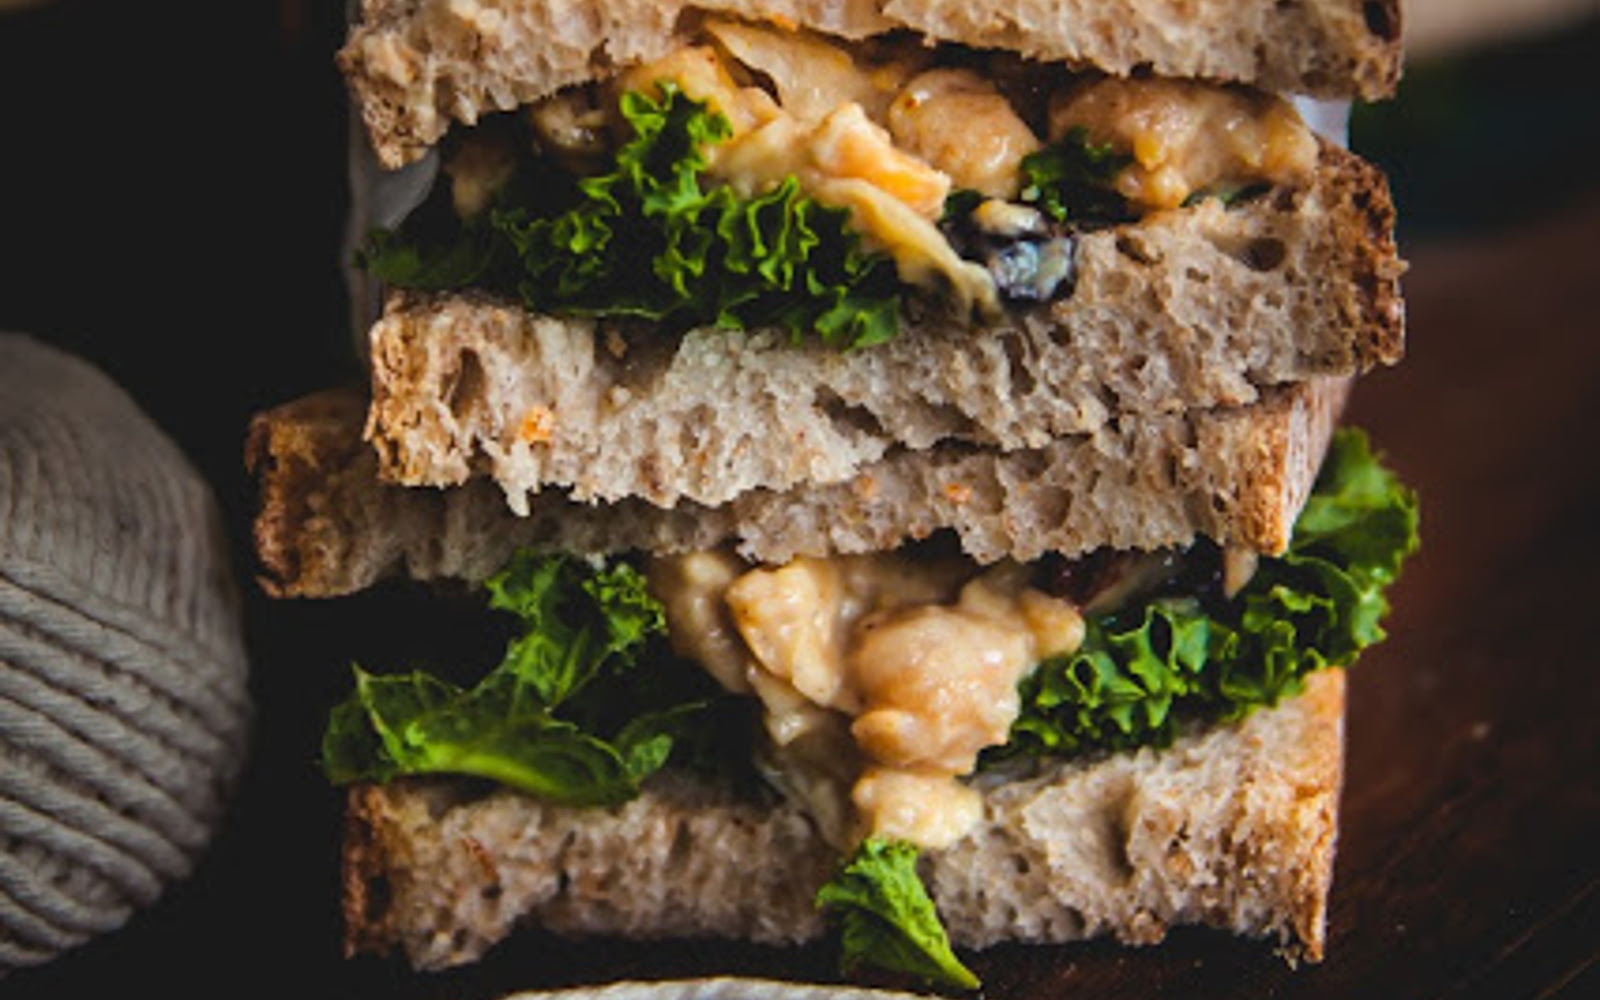 Vegan Coronation Chickpea Sandwiches between sourdough with greens